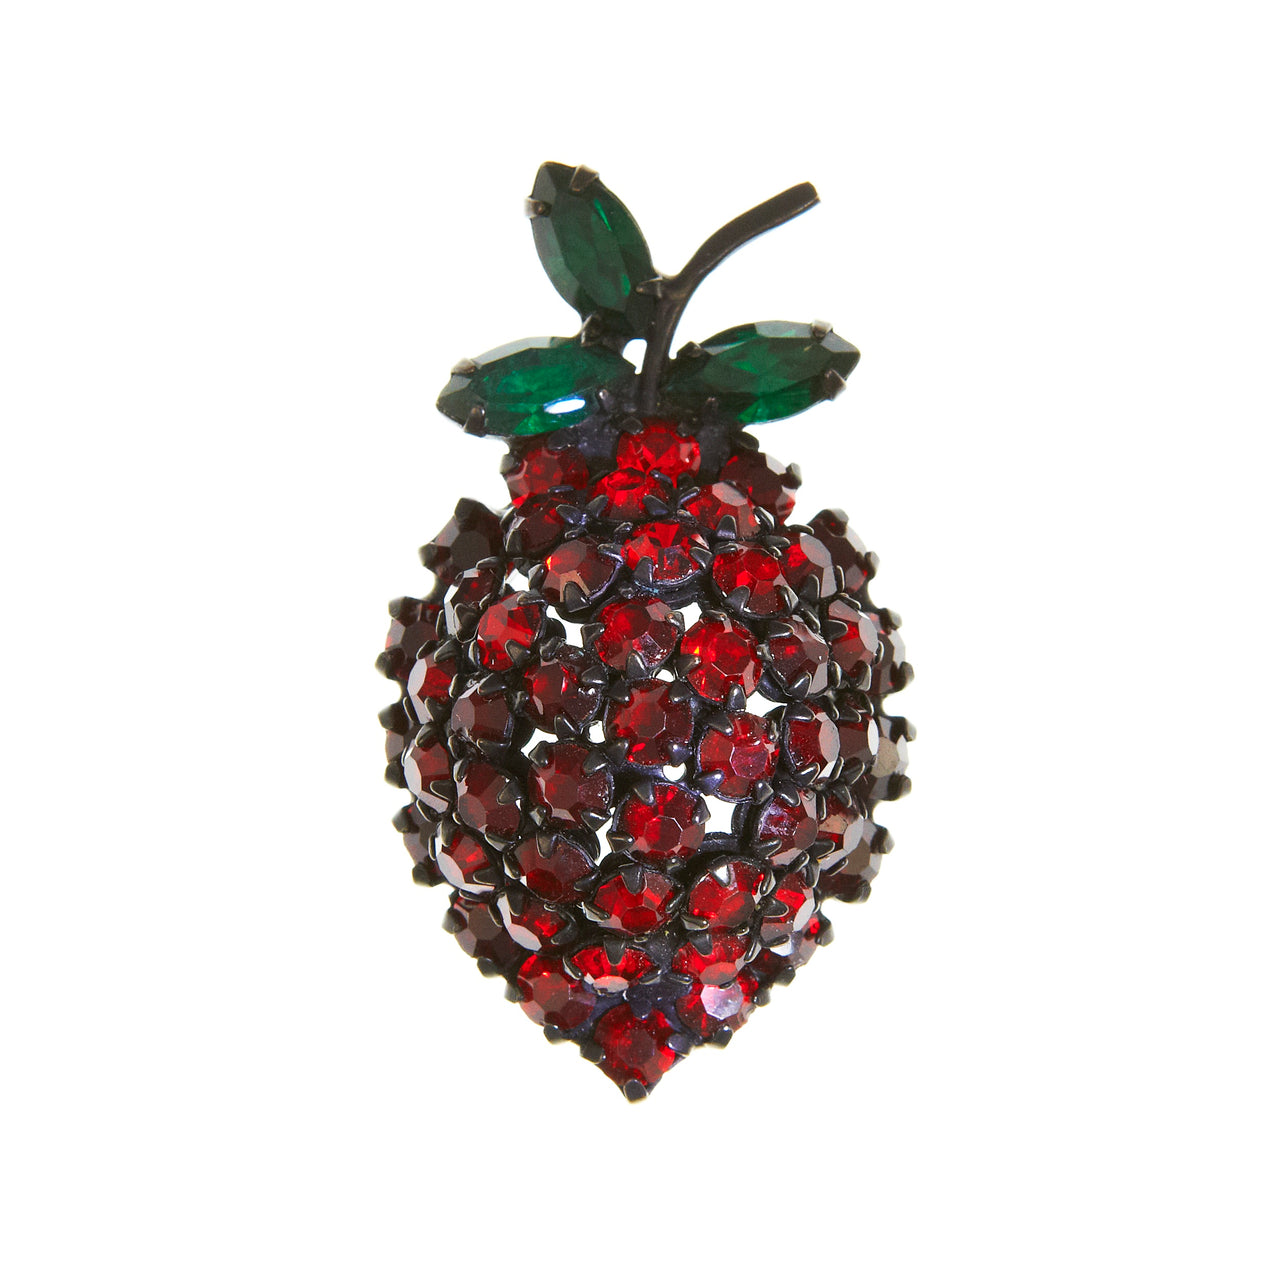 Vintage 1950s berry brooch